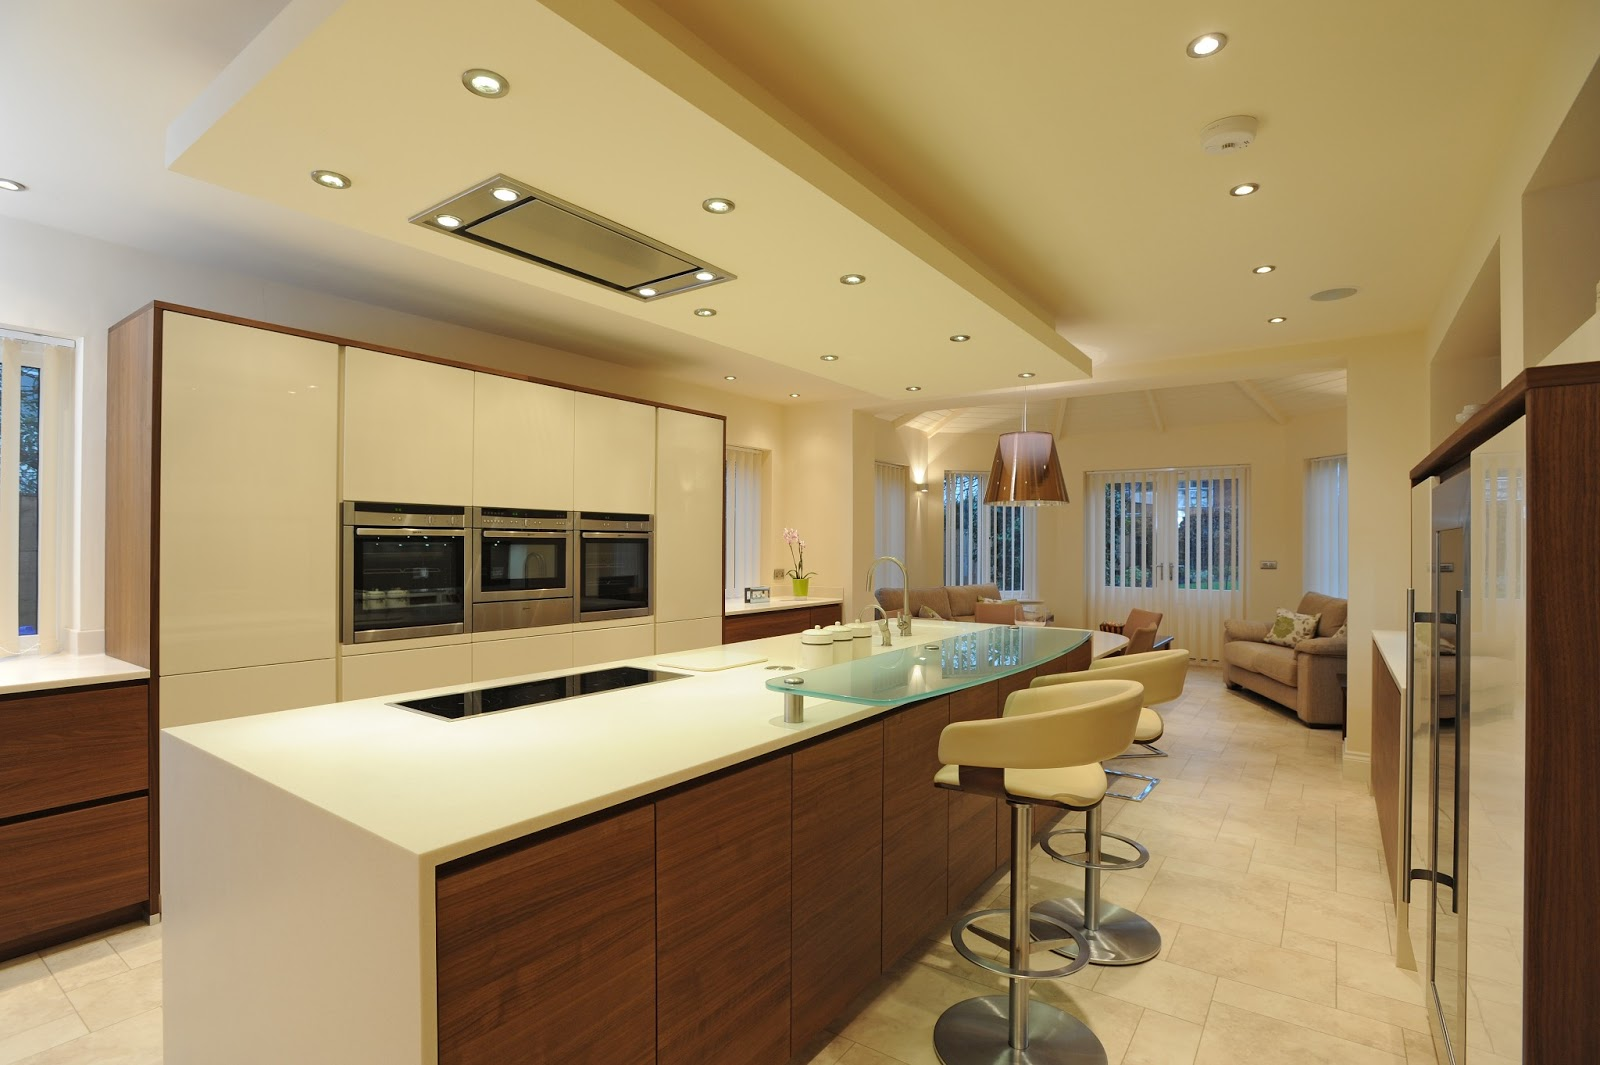 Alno Kitchens Diane Berry Kitchens Client Kitchens Mr And Mrs Stock